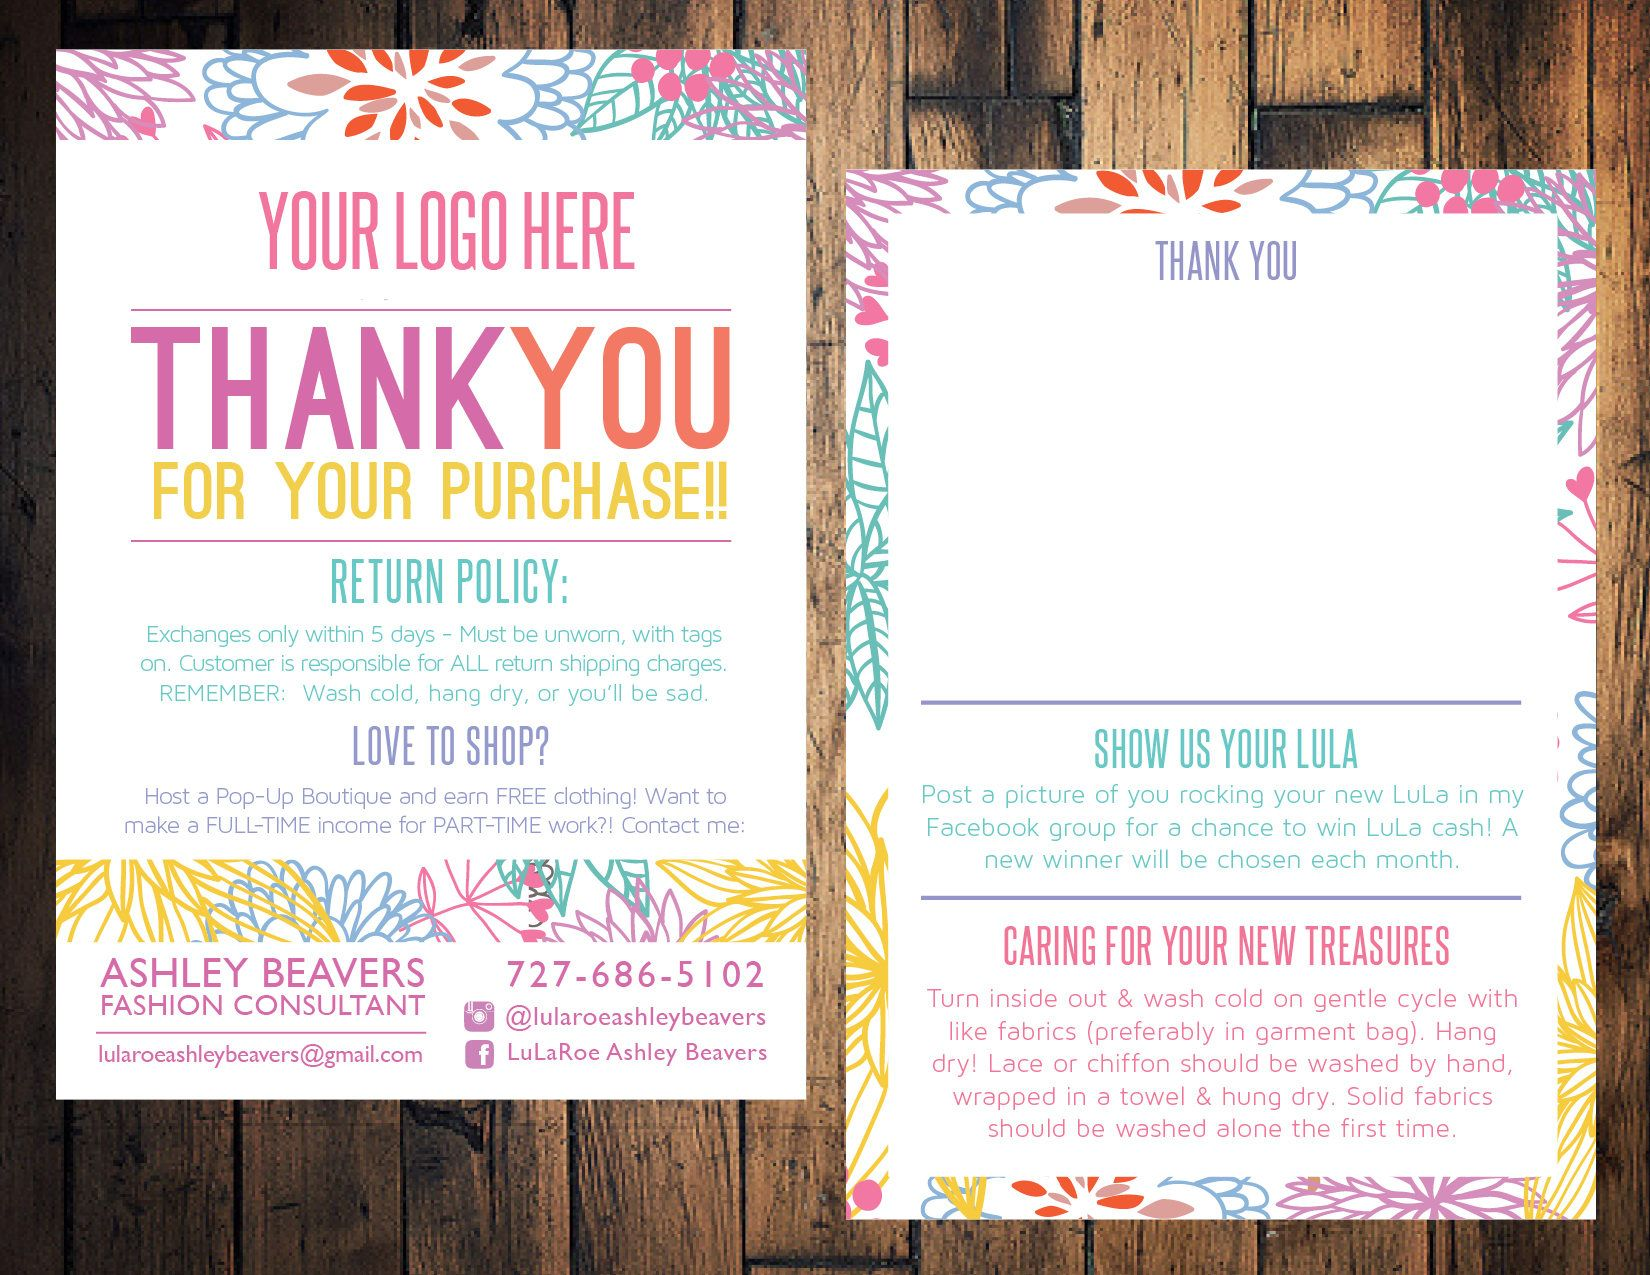 Floral clothing care card sales thank you card sales card sales floral clothing care card sales thank you card sales card sales blitz kristyandbryce Images